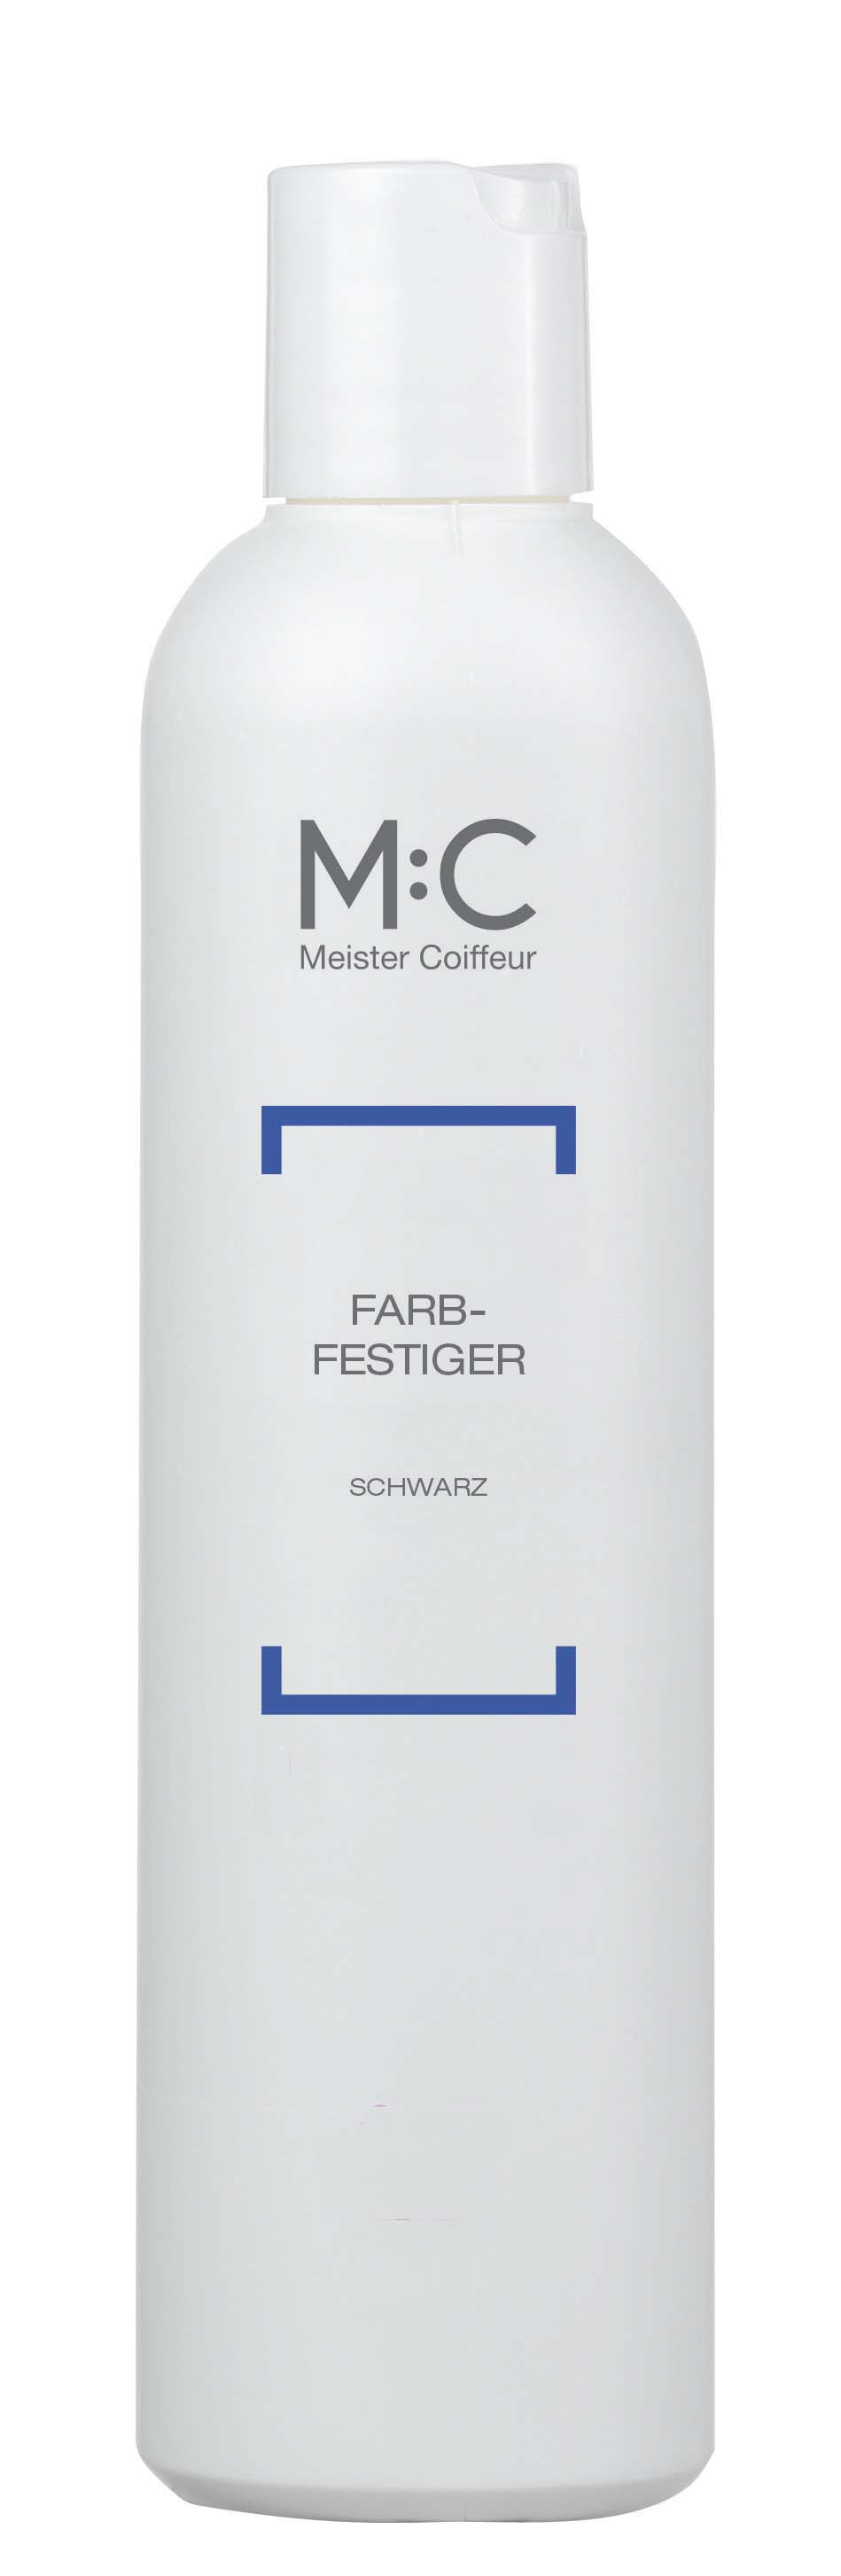 M:C Color Lotion noir C